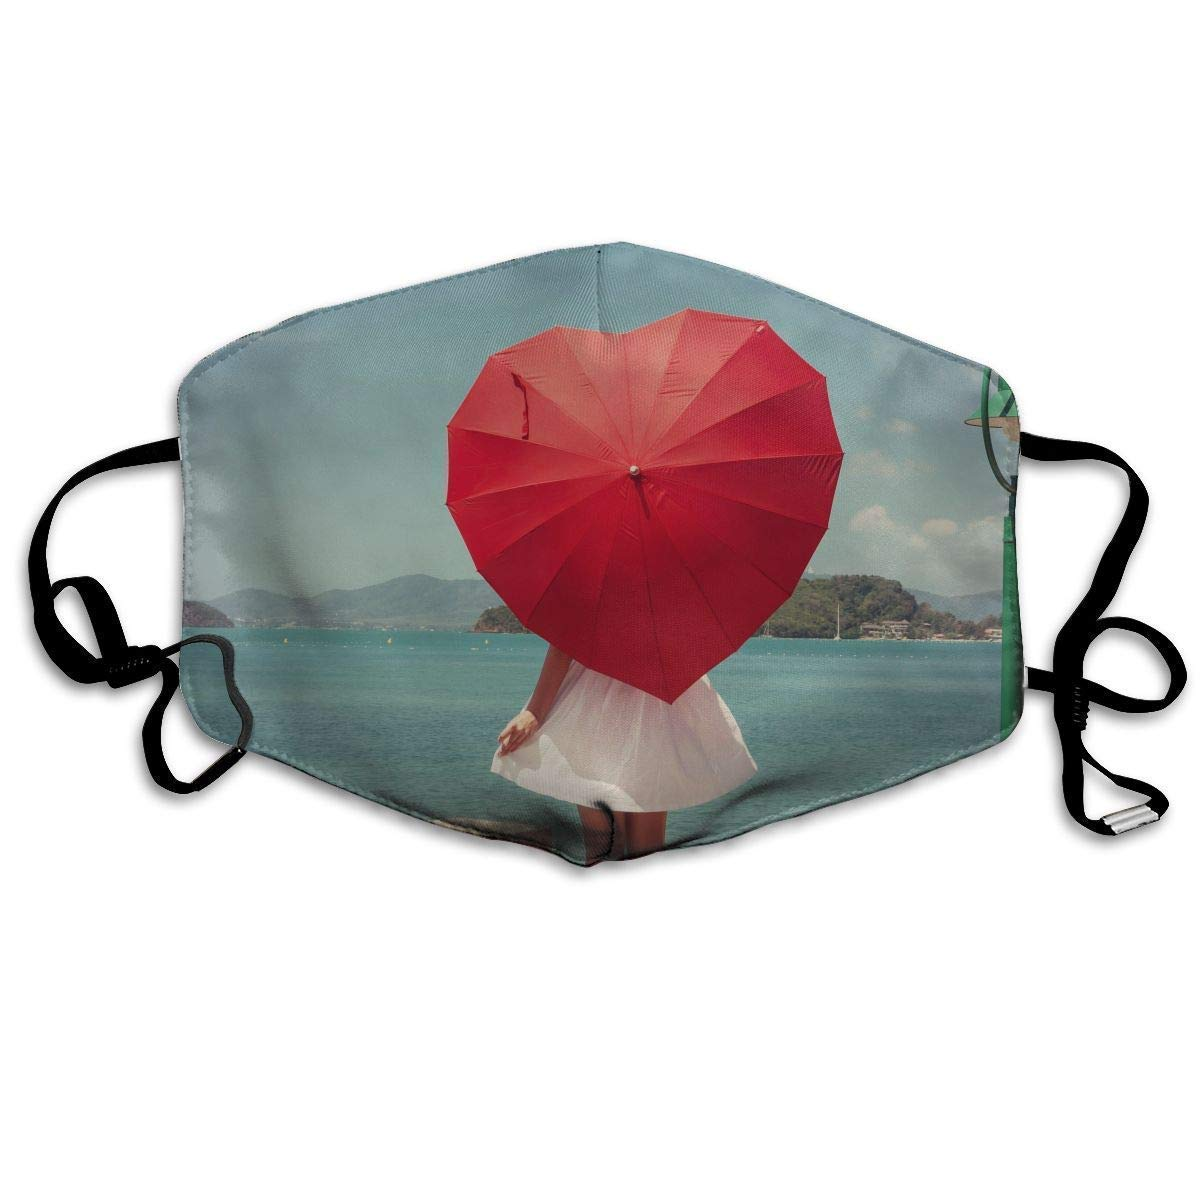 Dustproof Face Mouth Cover Mask - Windproof Reirator Valentines's y Girl Print Earloop Mask